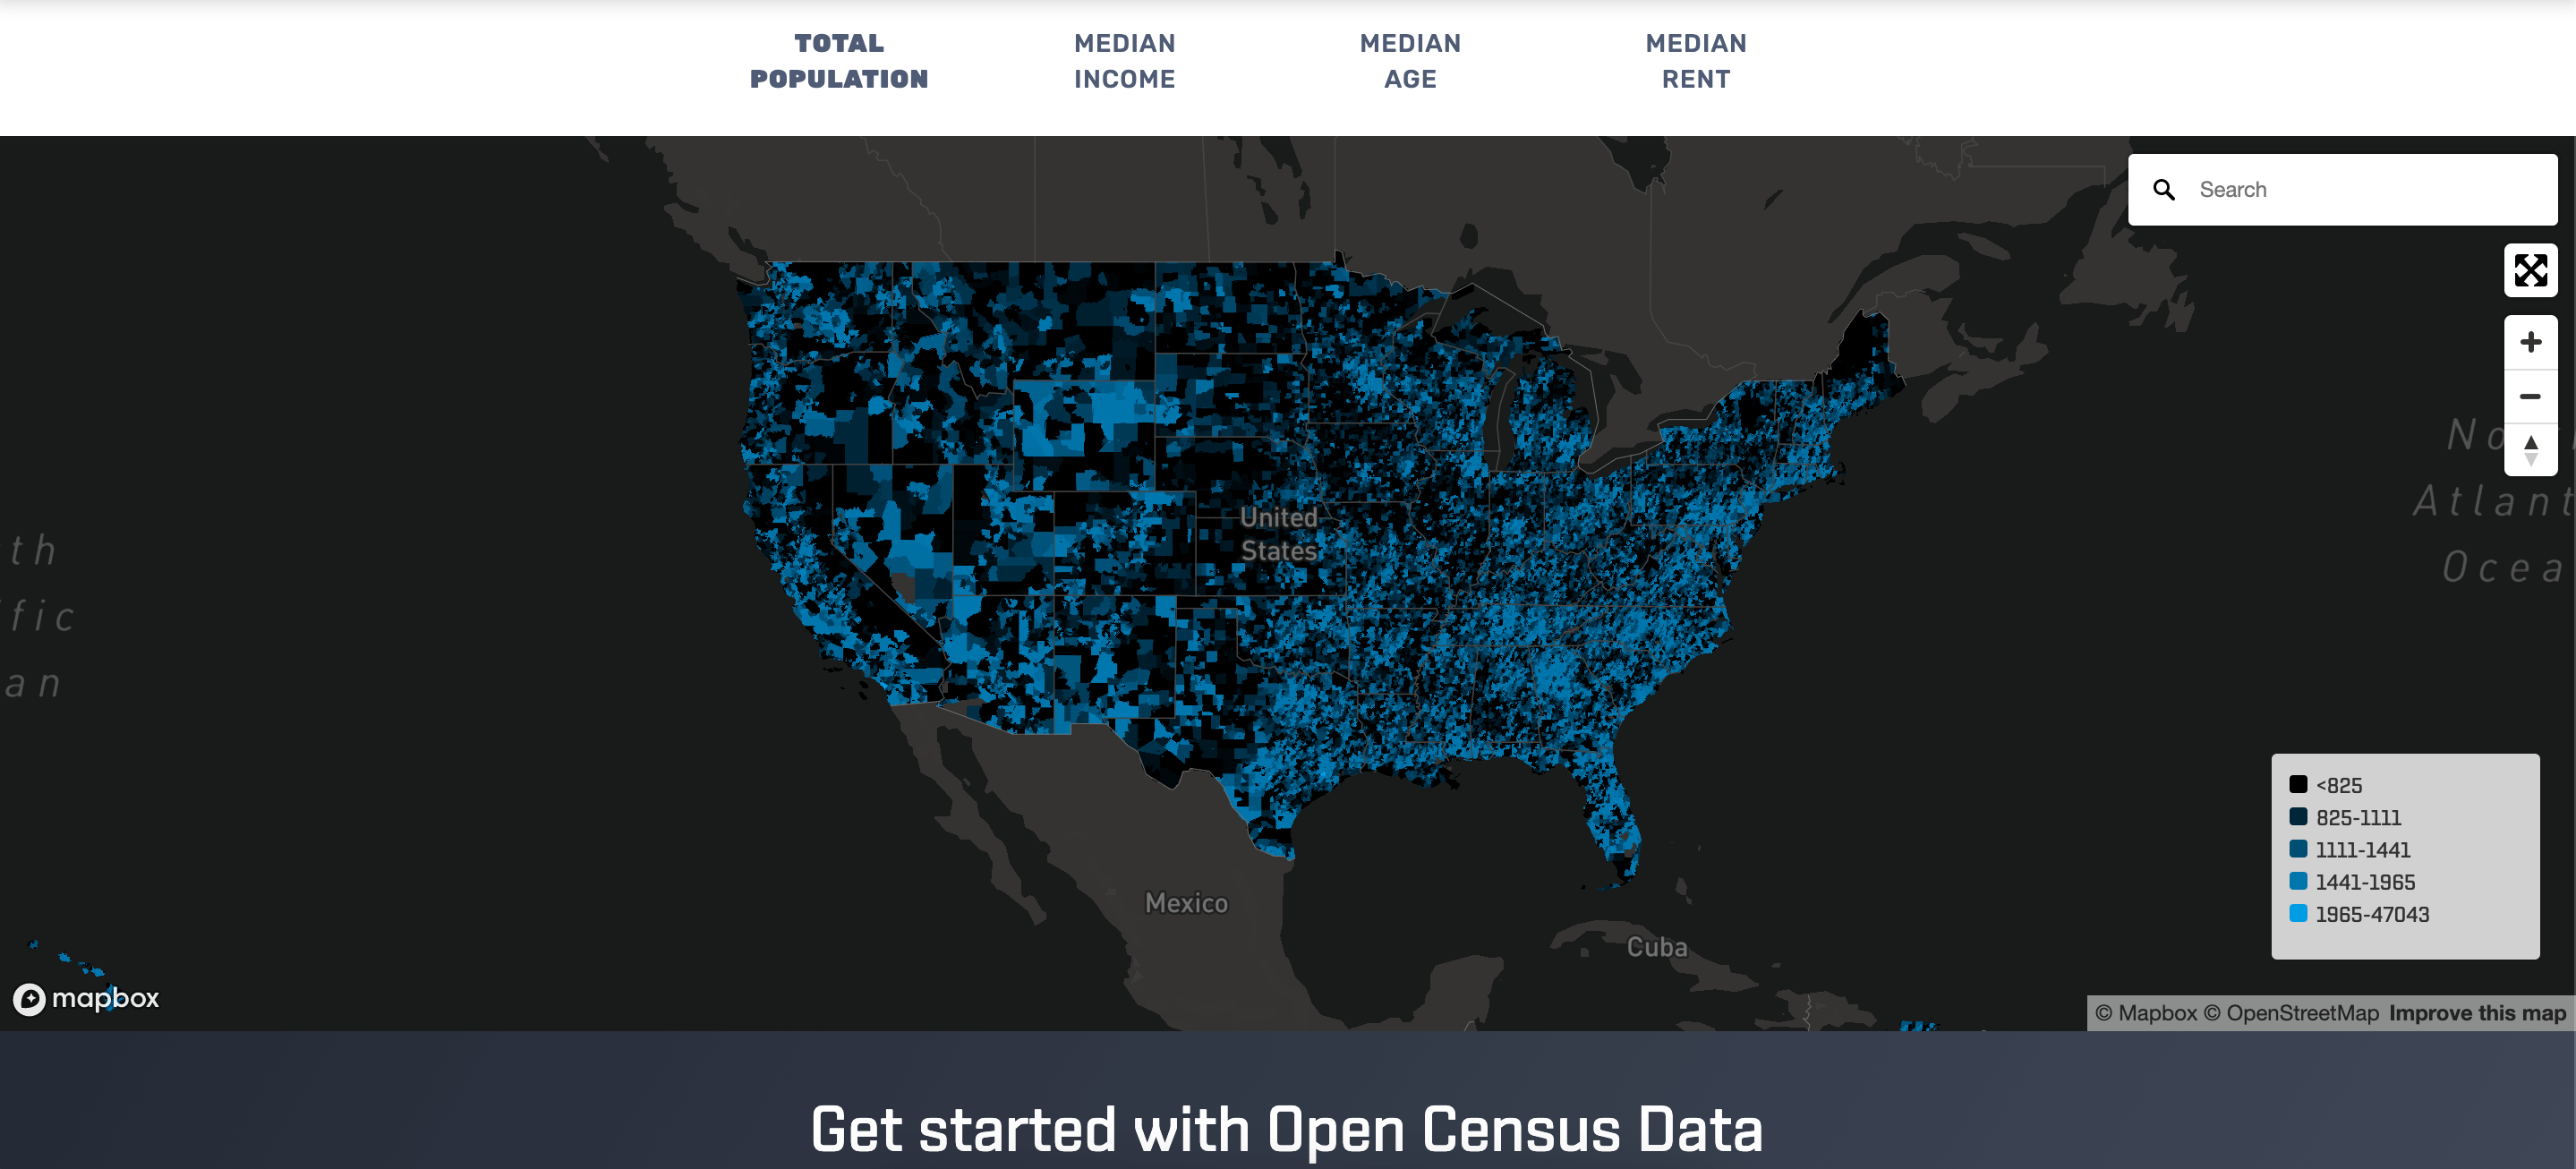 Open Census Data Update: Now Including ACS Data From 2016-2019